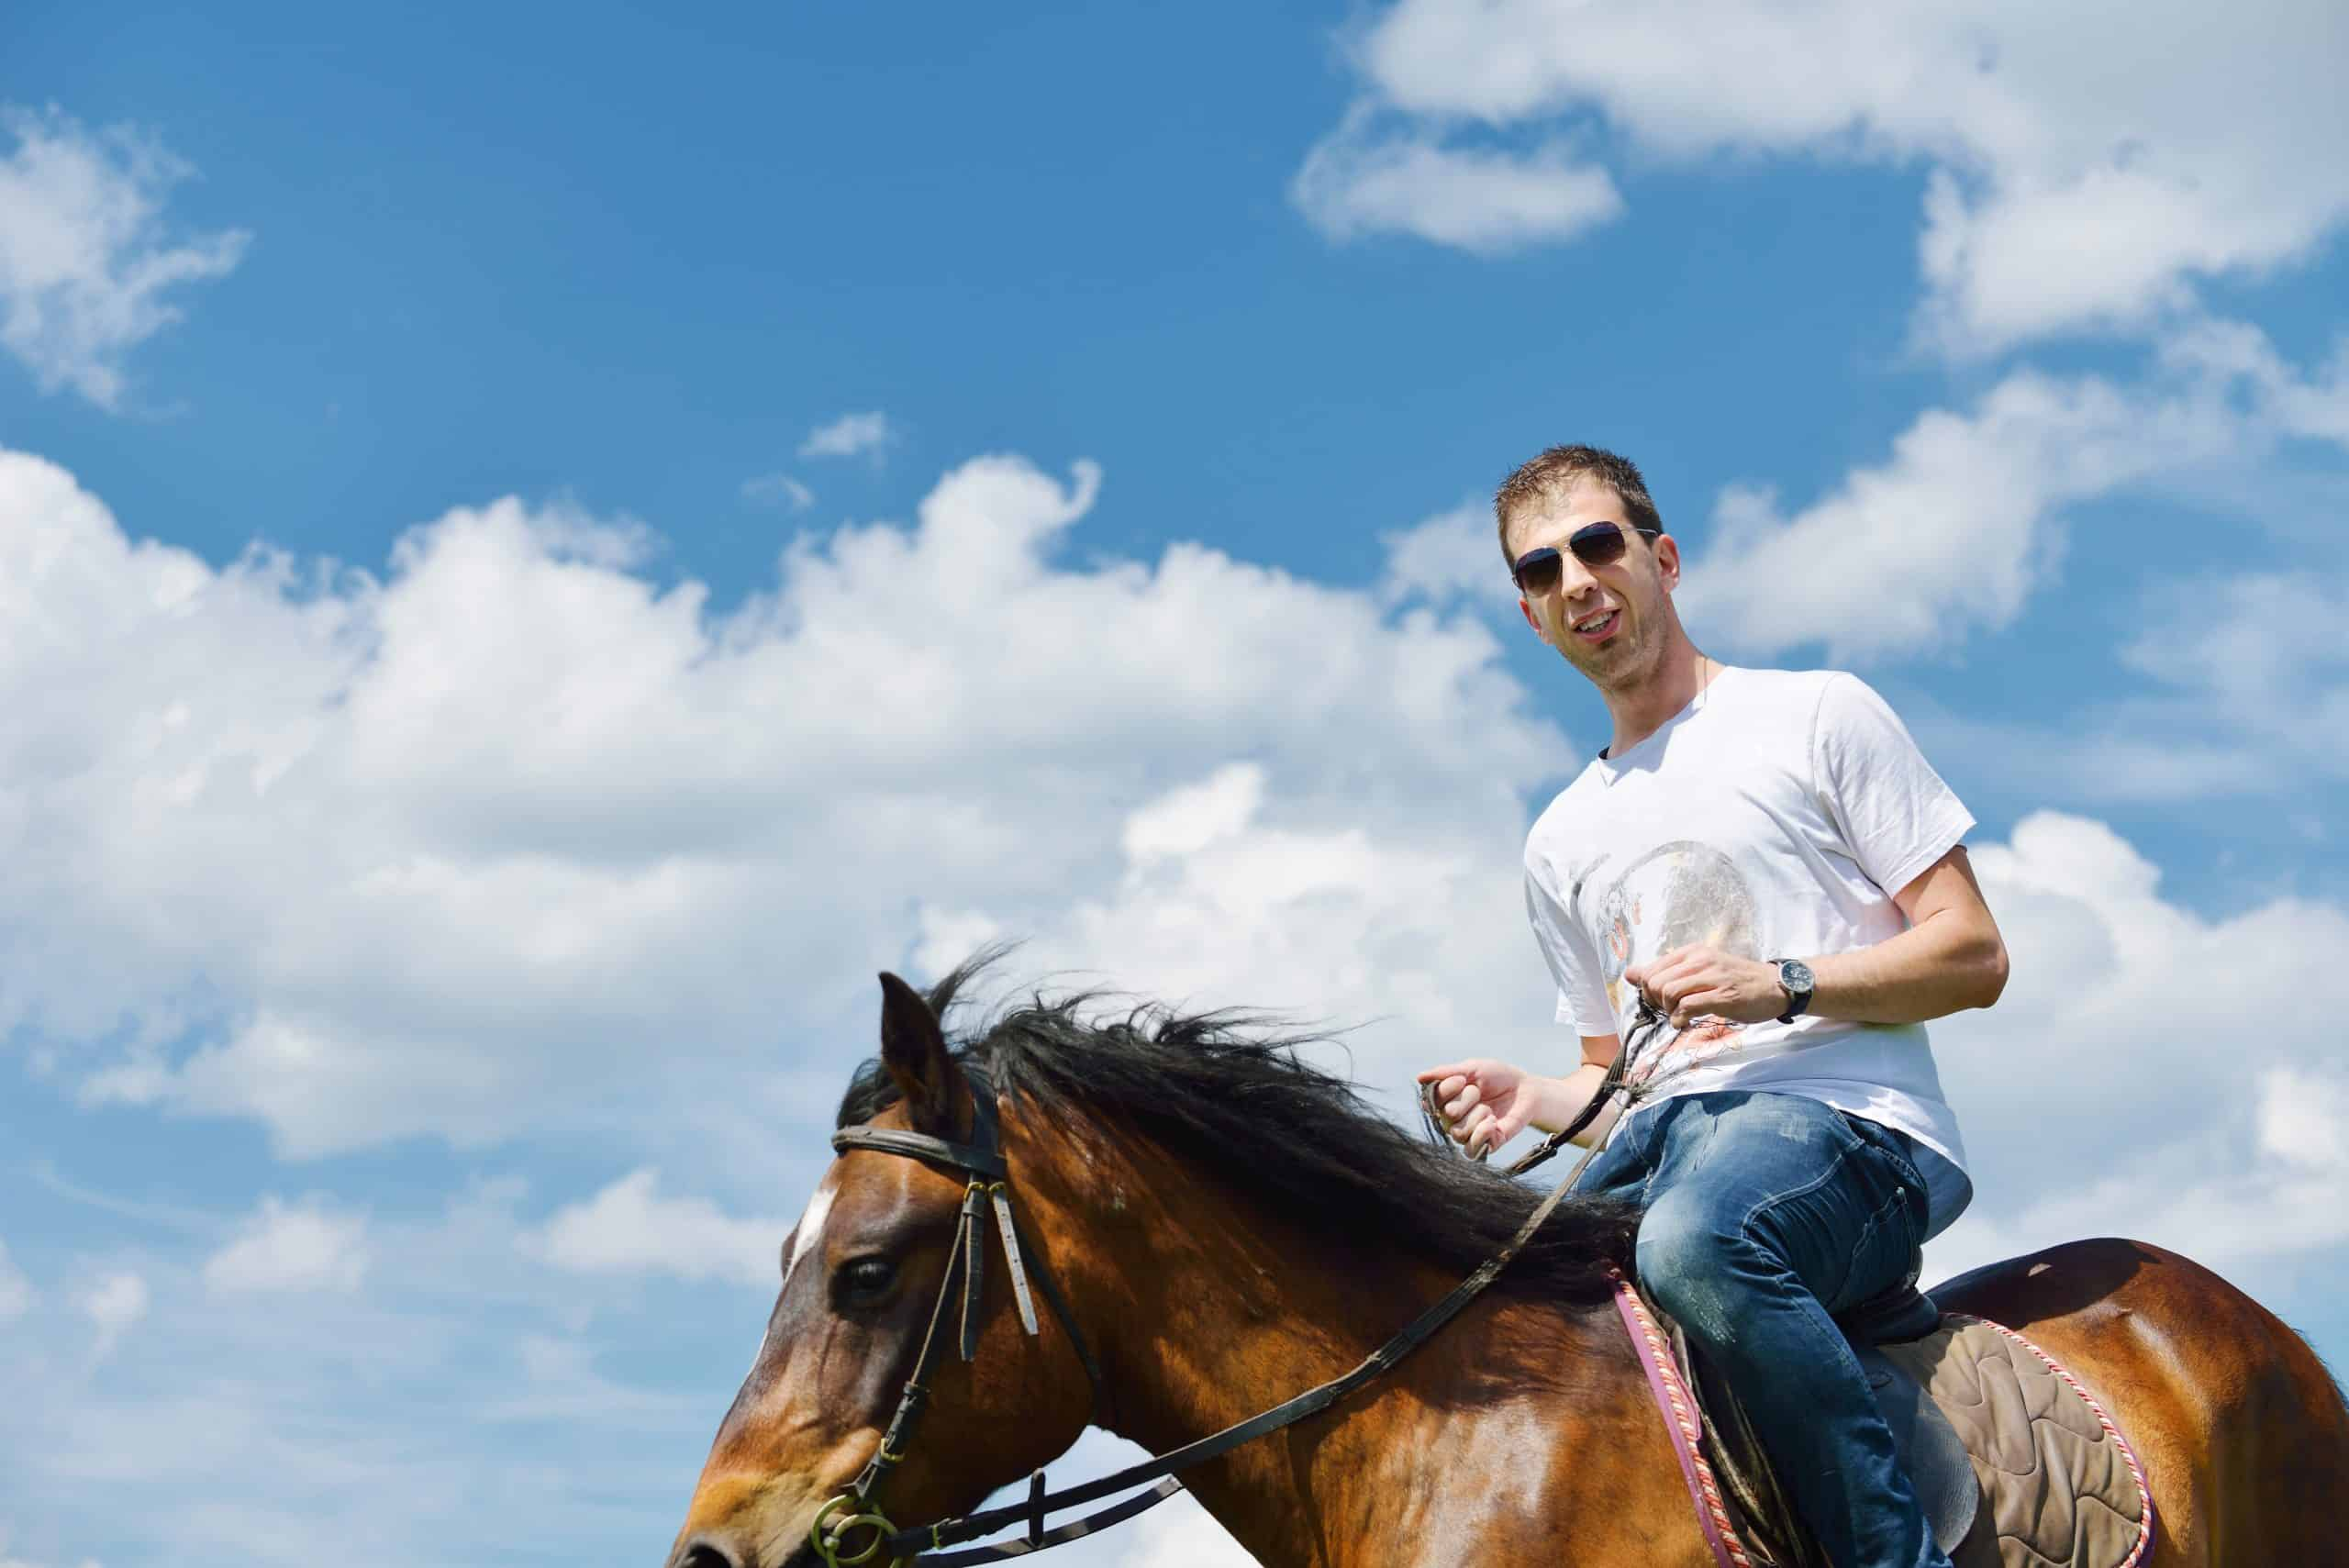 young man on horseback farm animal with blue sky in background